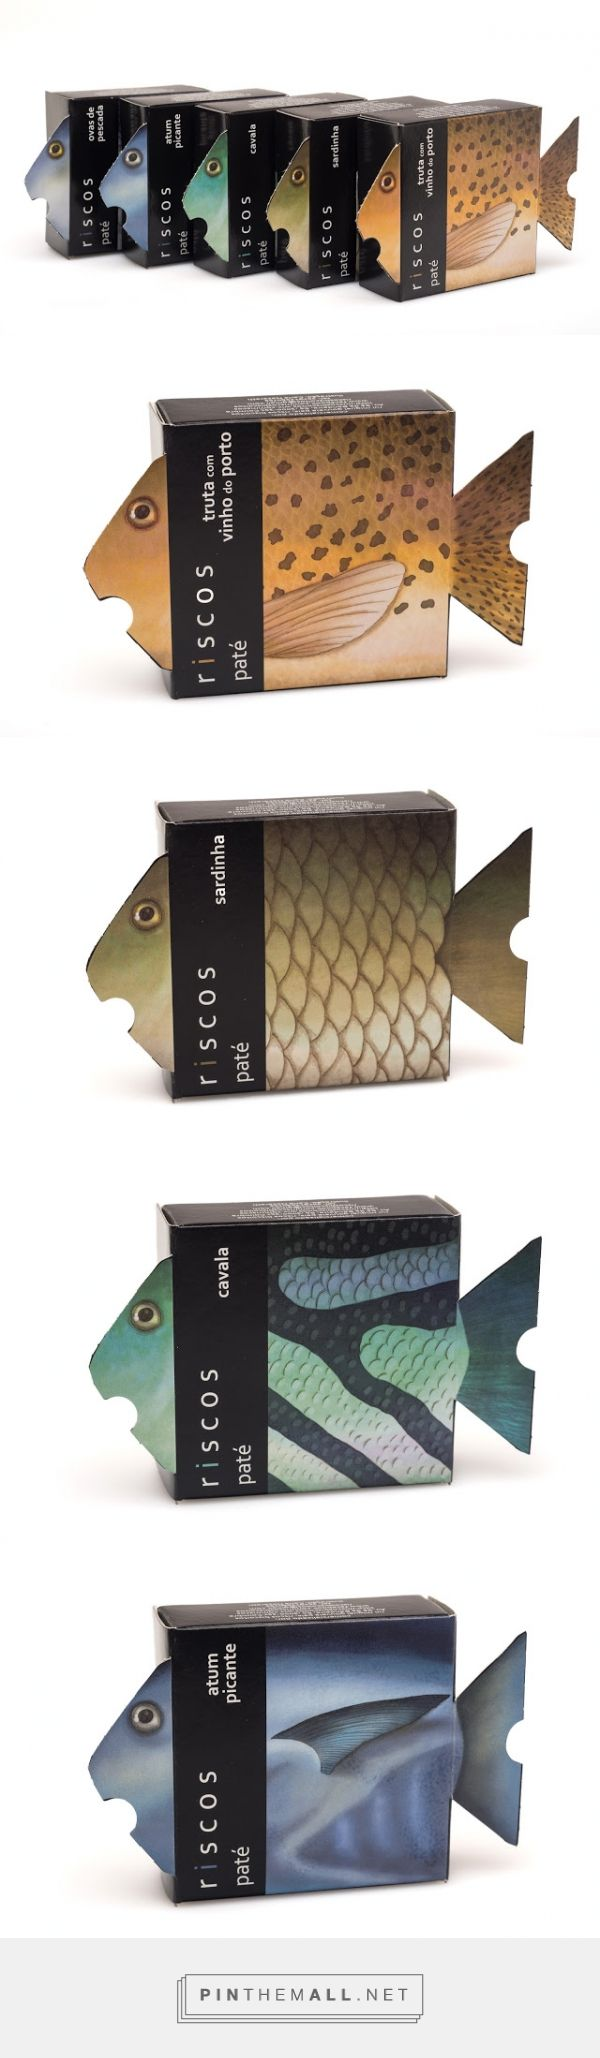 Riscos #Fish Patés #packaging designed by NósNaLinha - http://www.packagingoftheworld.com/2015/06/riscos-pates.html